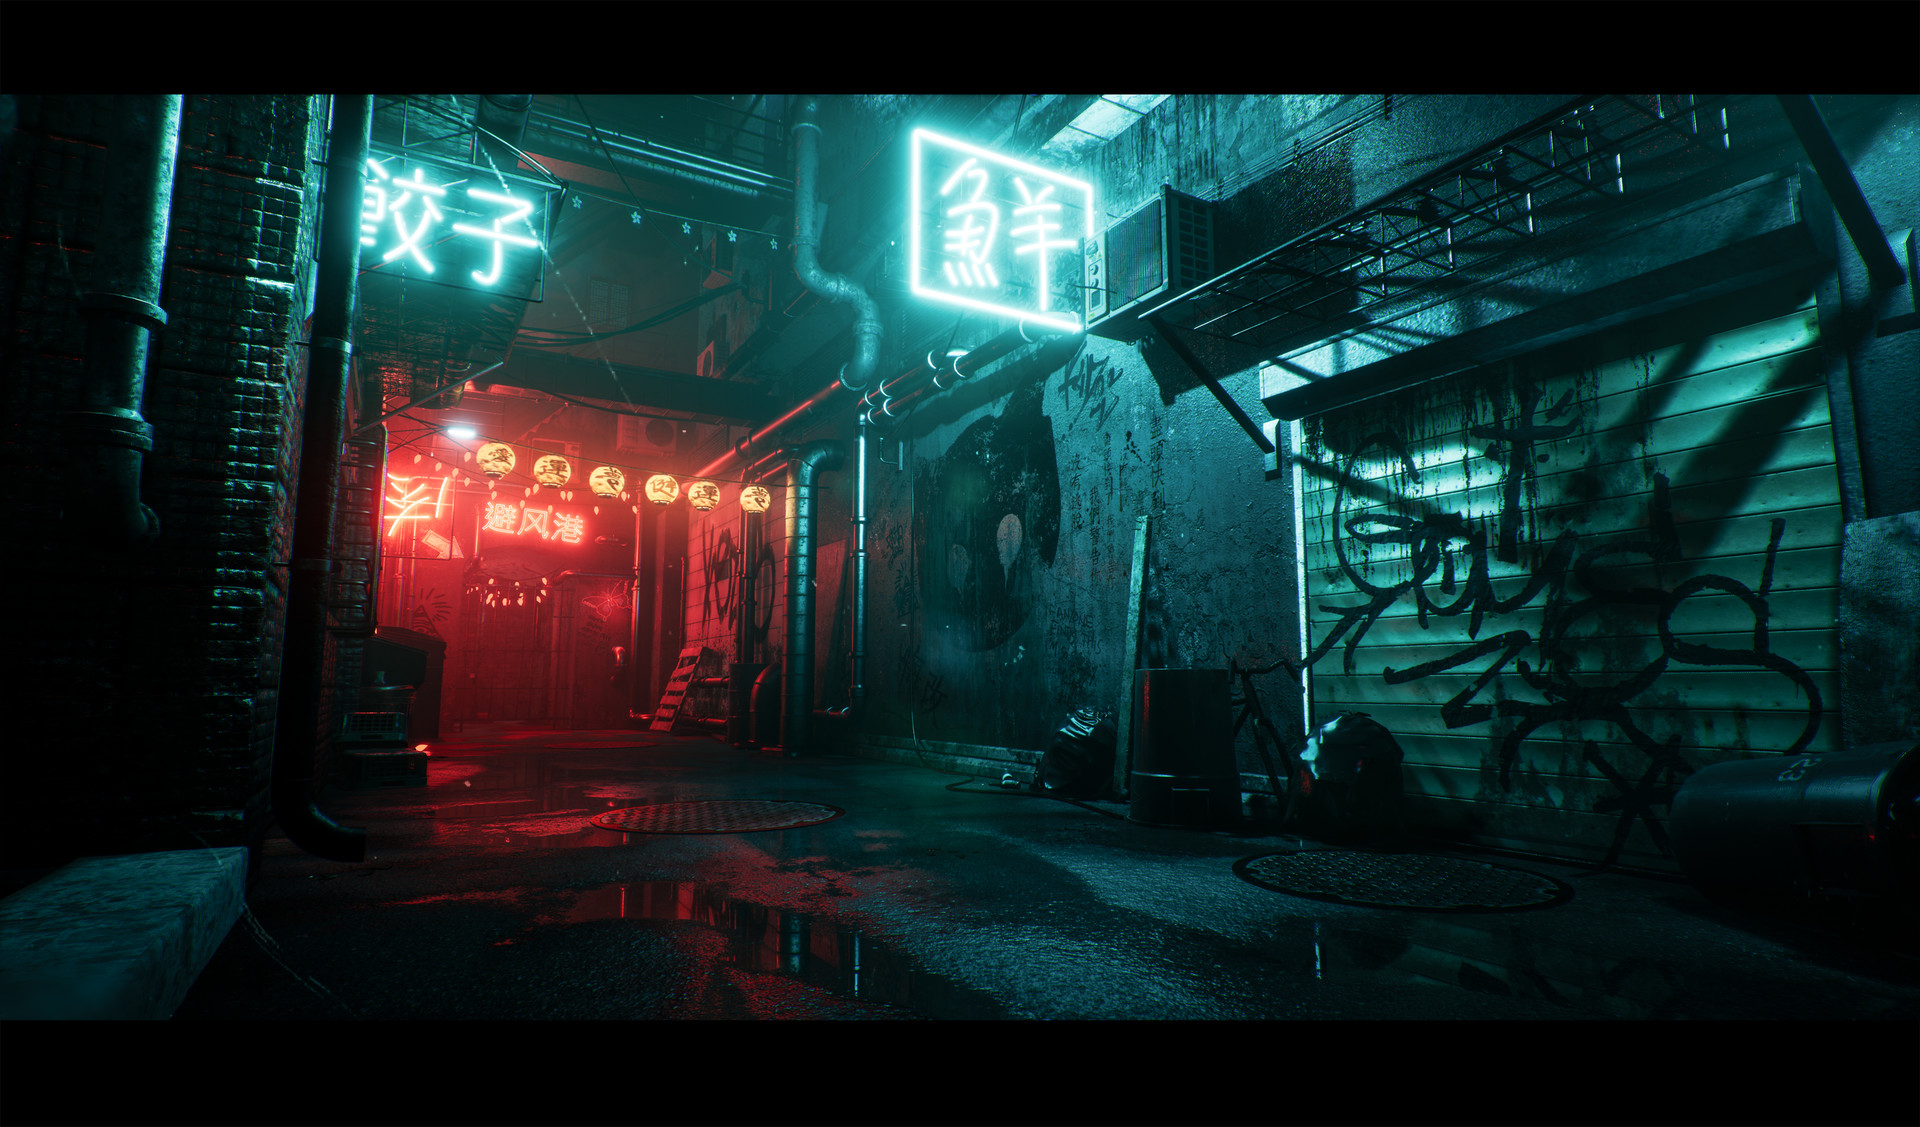 Asian Artwork Artstation - An Asian Back Alley (unreal 4), Oskar Woinski